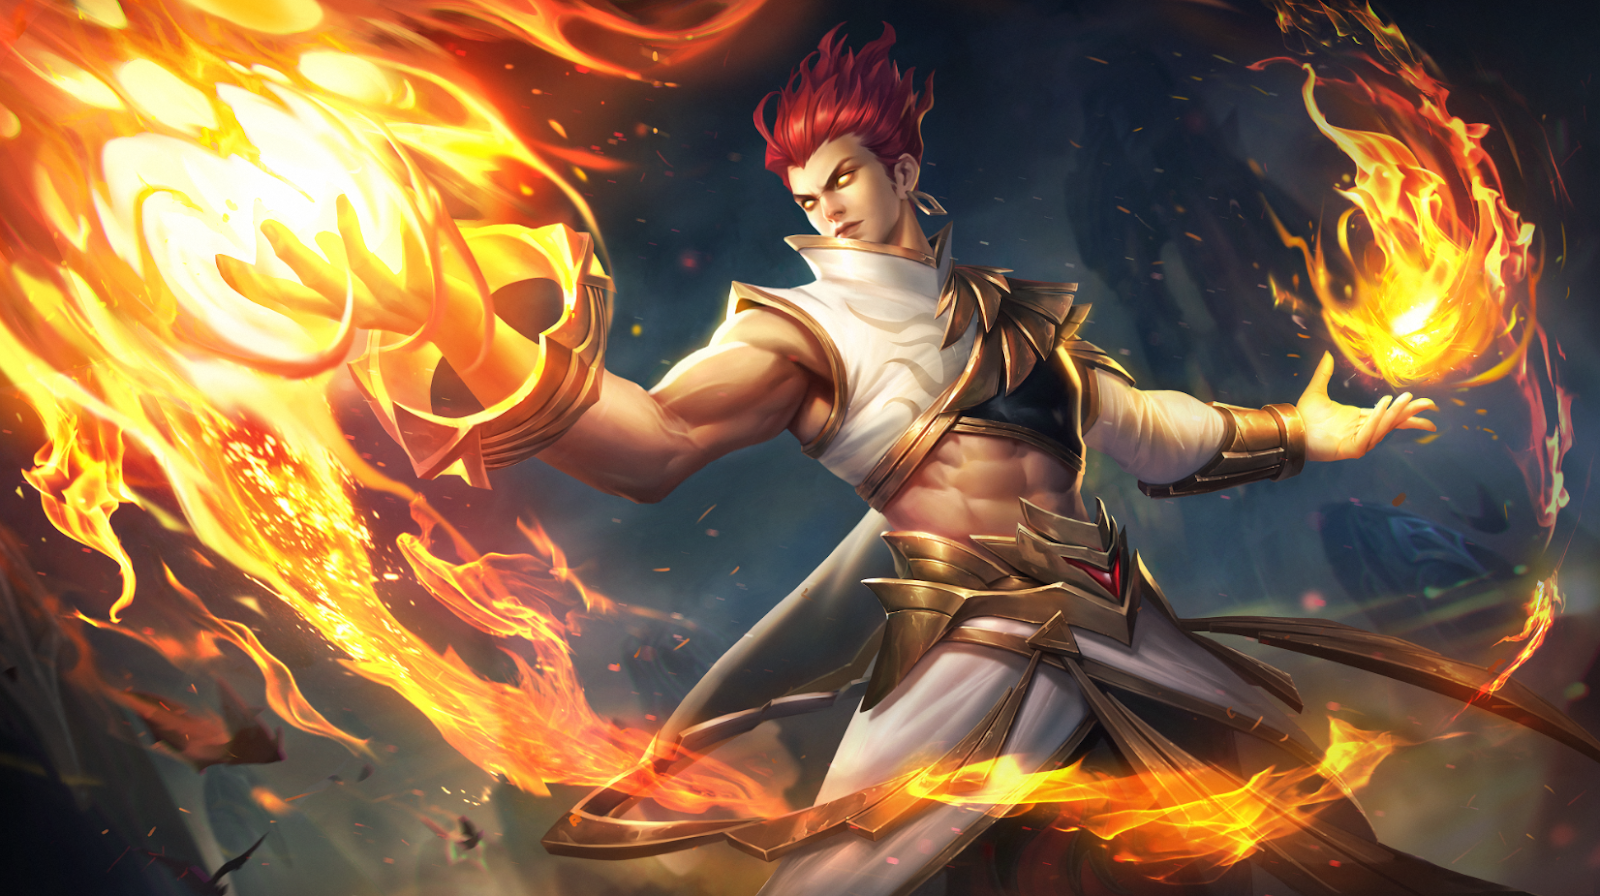 Image Valir Skin Png Mobile Legends Wiki Fandom Powered By Wikia Mobile Legend Hd Wallpaper